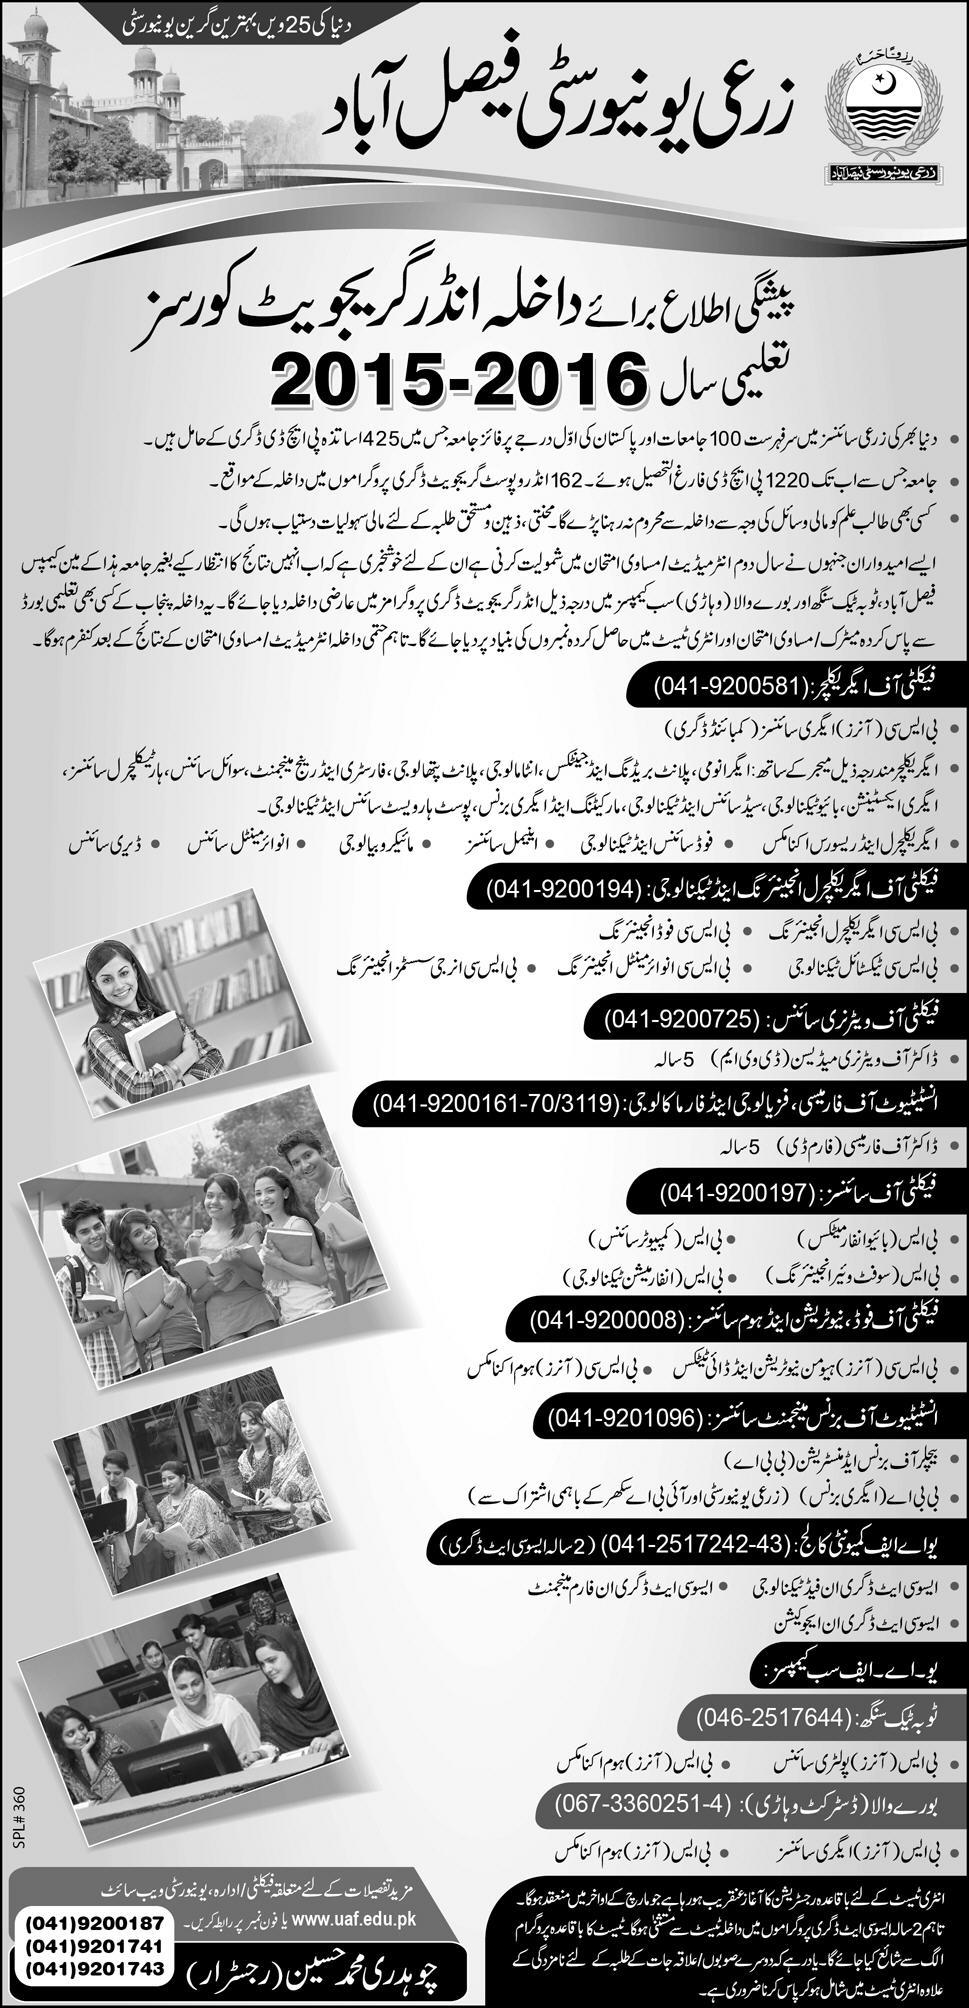 University of Agriculture Faisalabad Admissions 2015